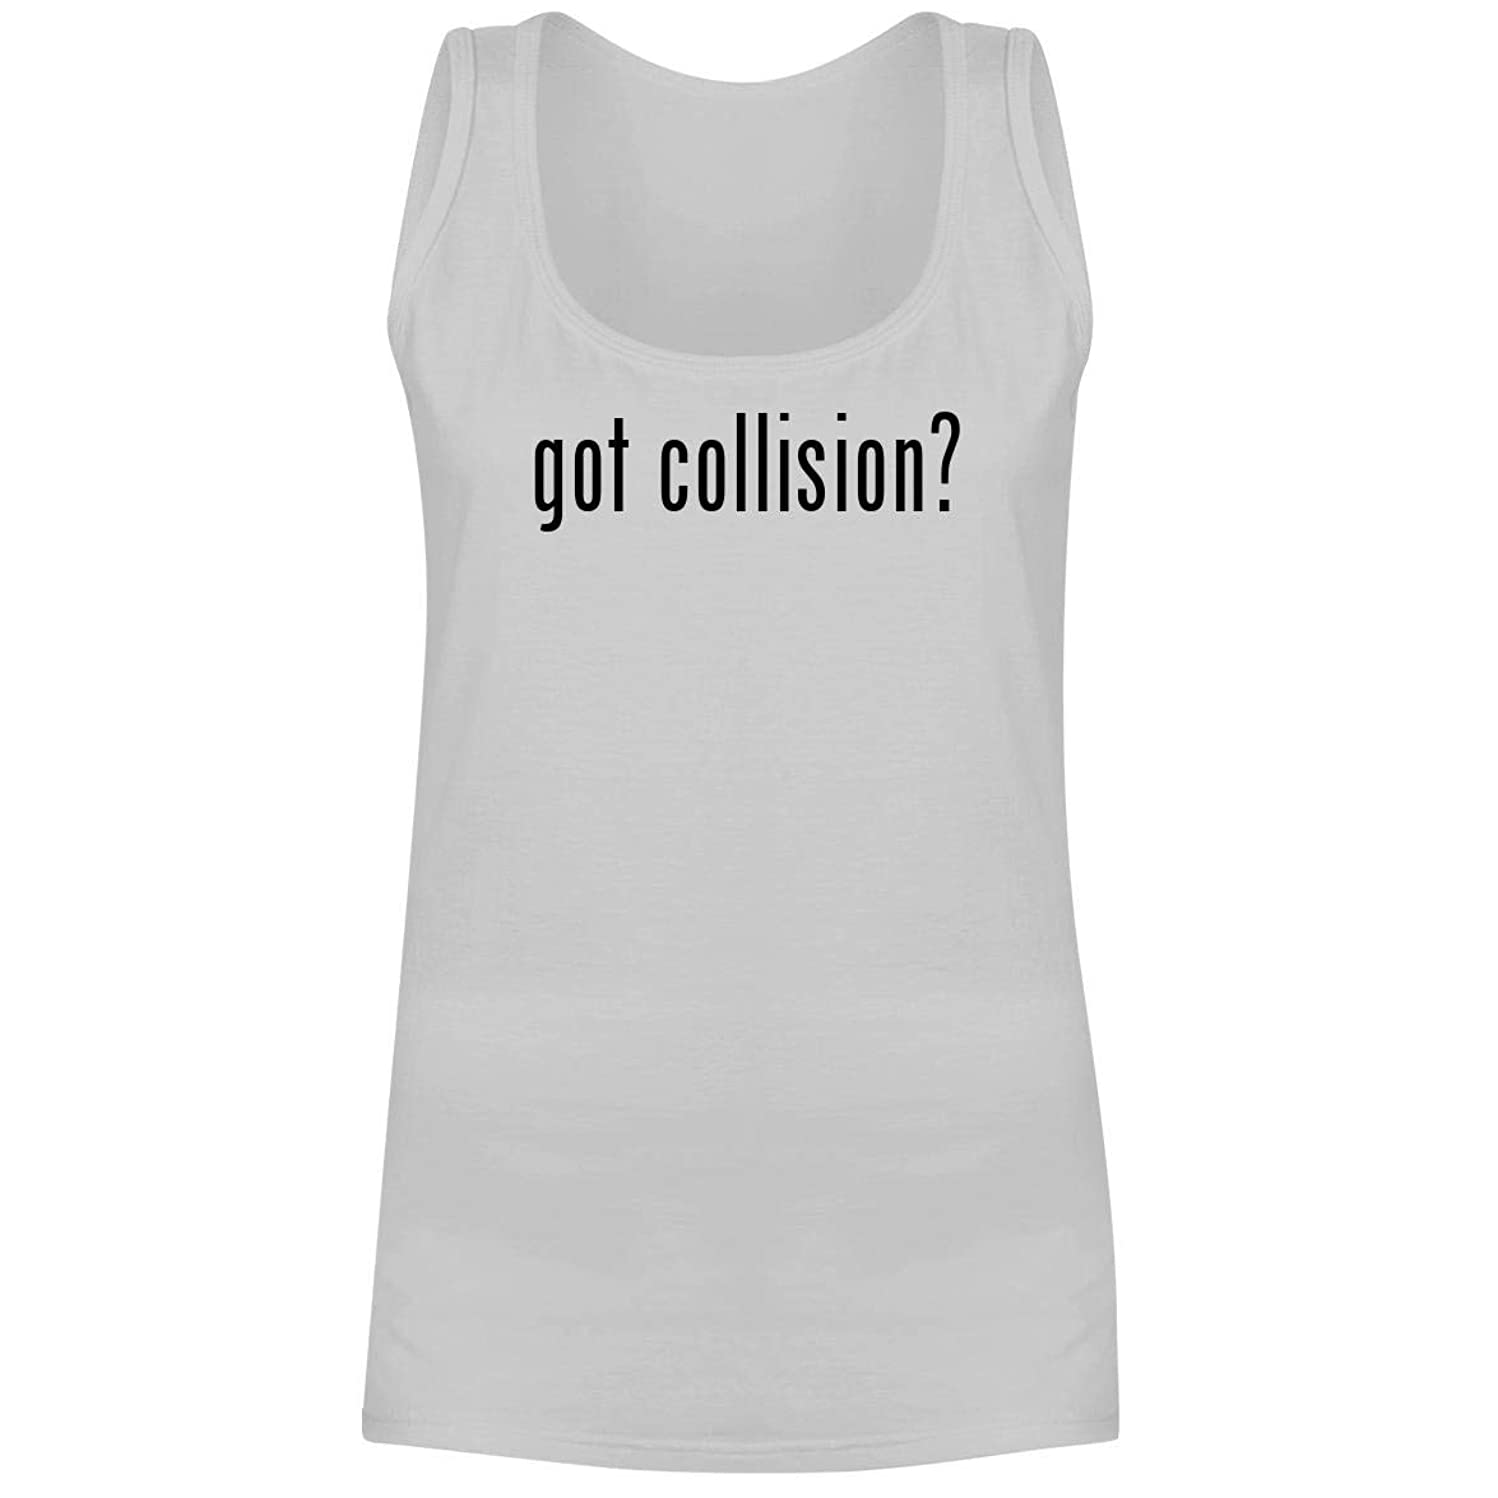 The Town Butler got Collision? - A Soft & Comfortable Women's Tank Top